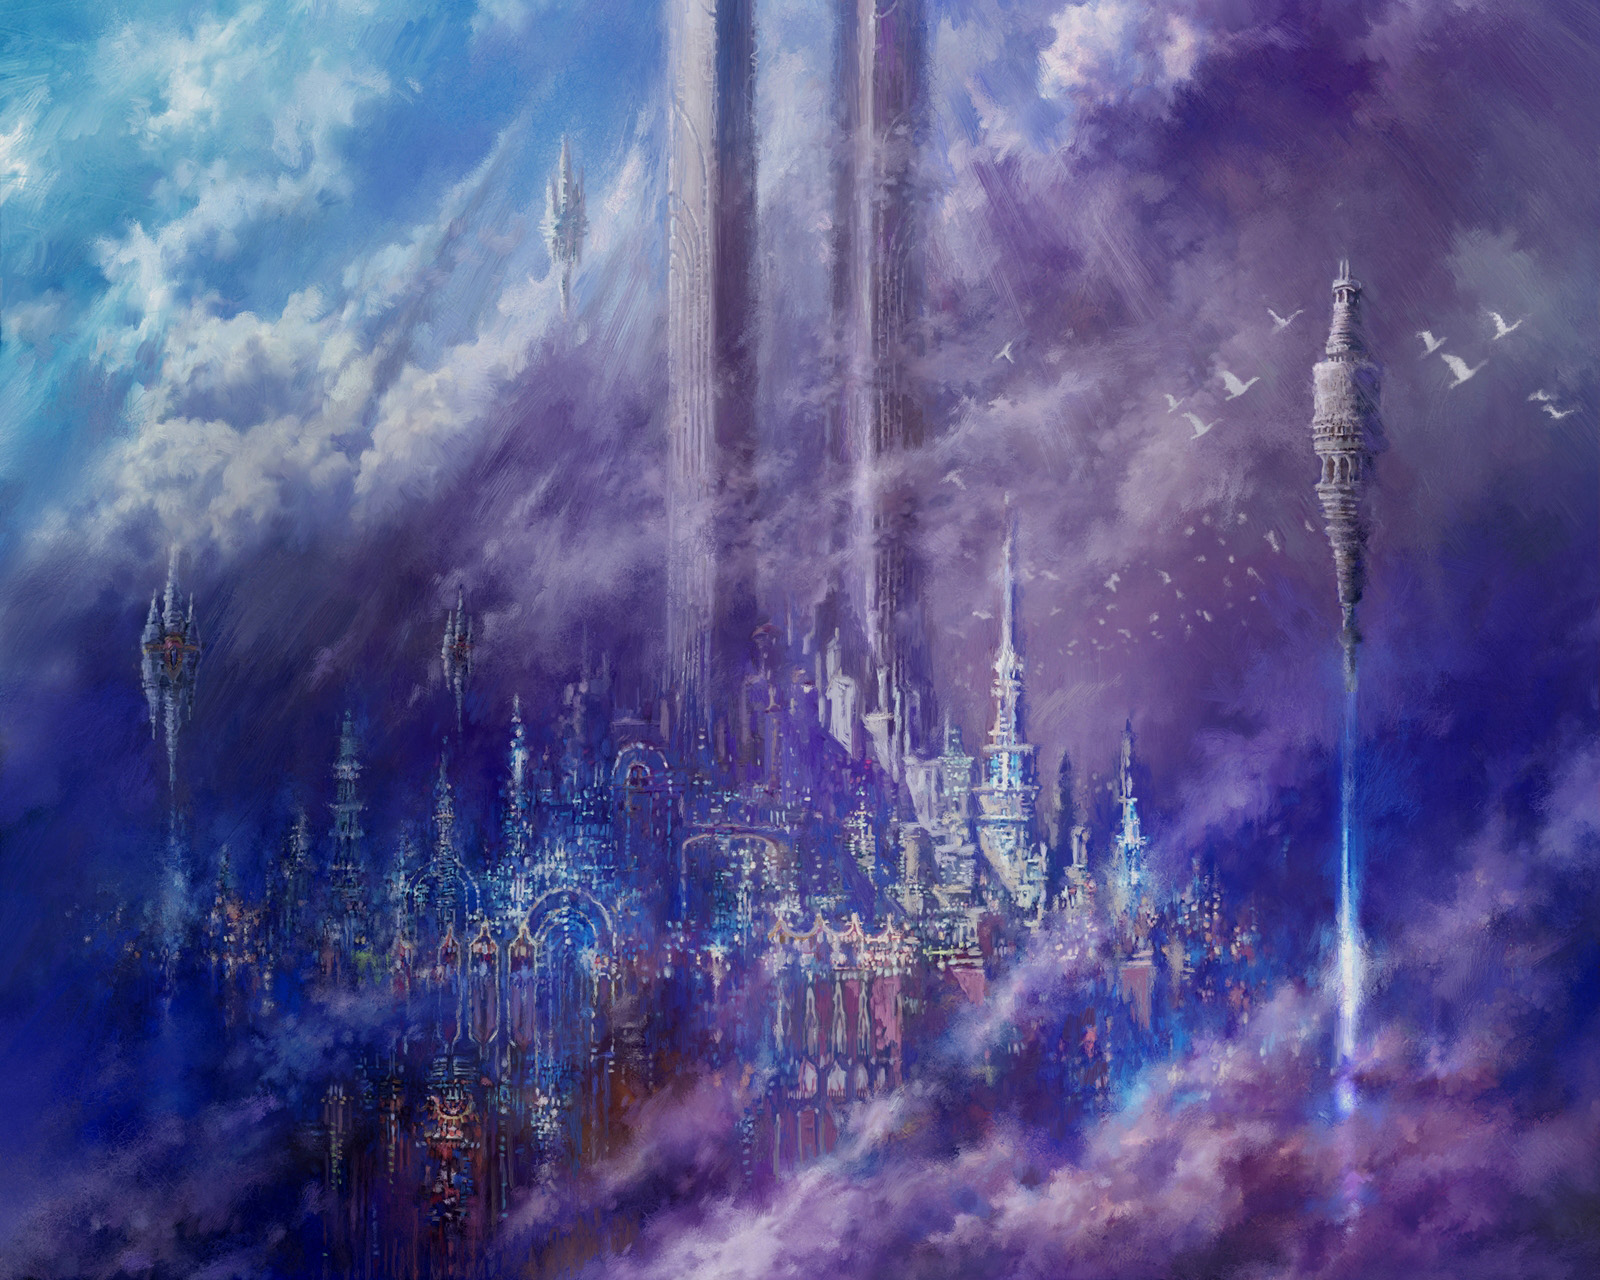 Aion: Tower Of Eternity Backgrounds on Wallpapers Vista